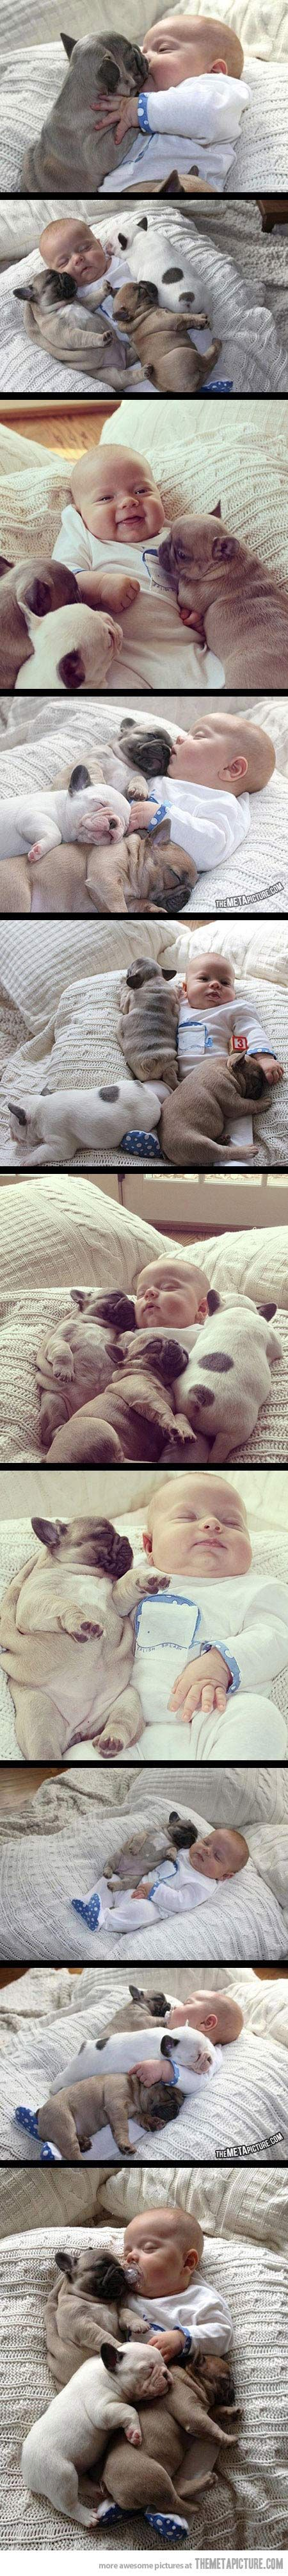 This is adorable.: Cuteness Overload, French Bulldogs, My Heart, Puppy, Baby, Animal